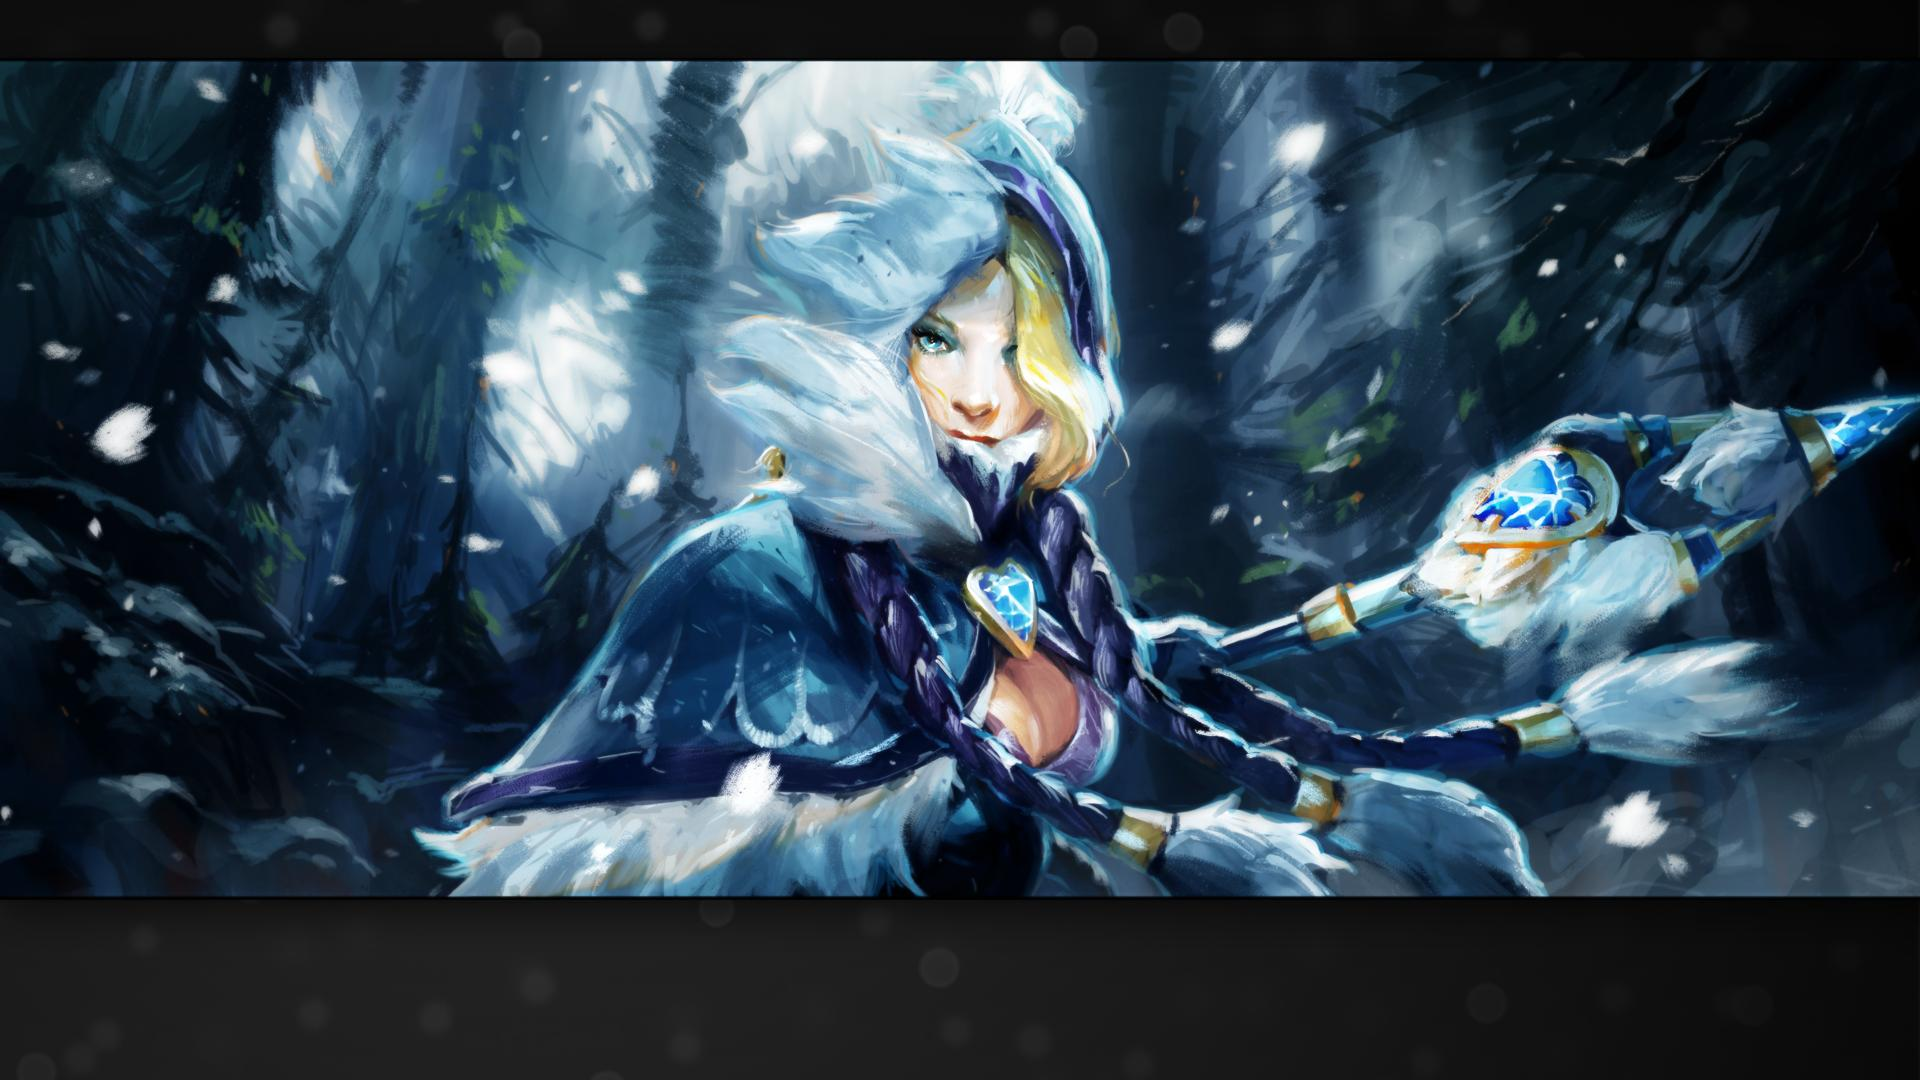 Dota 2 Wallpapers Download - ALL HD Wallpapers